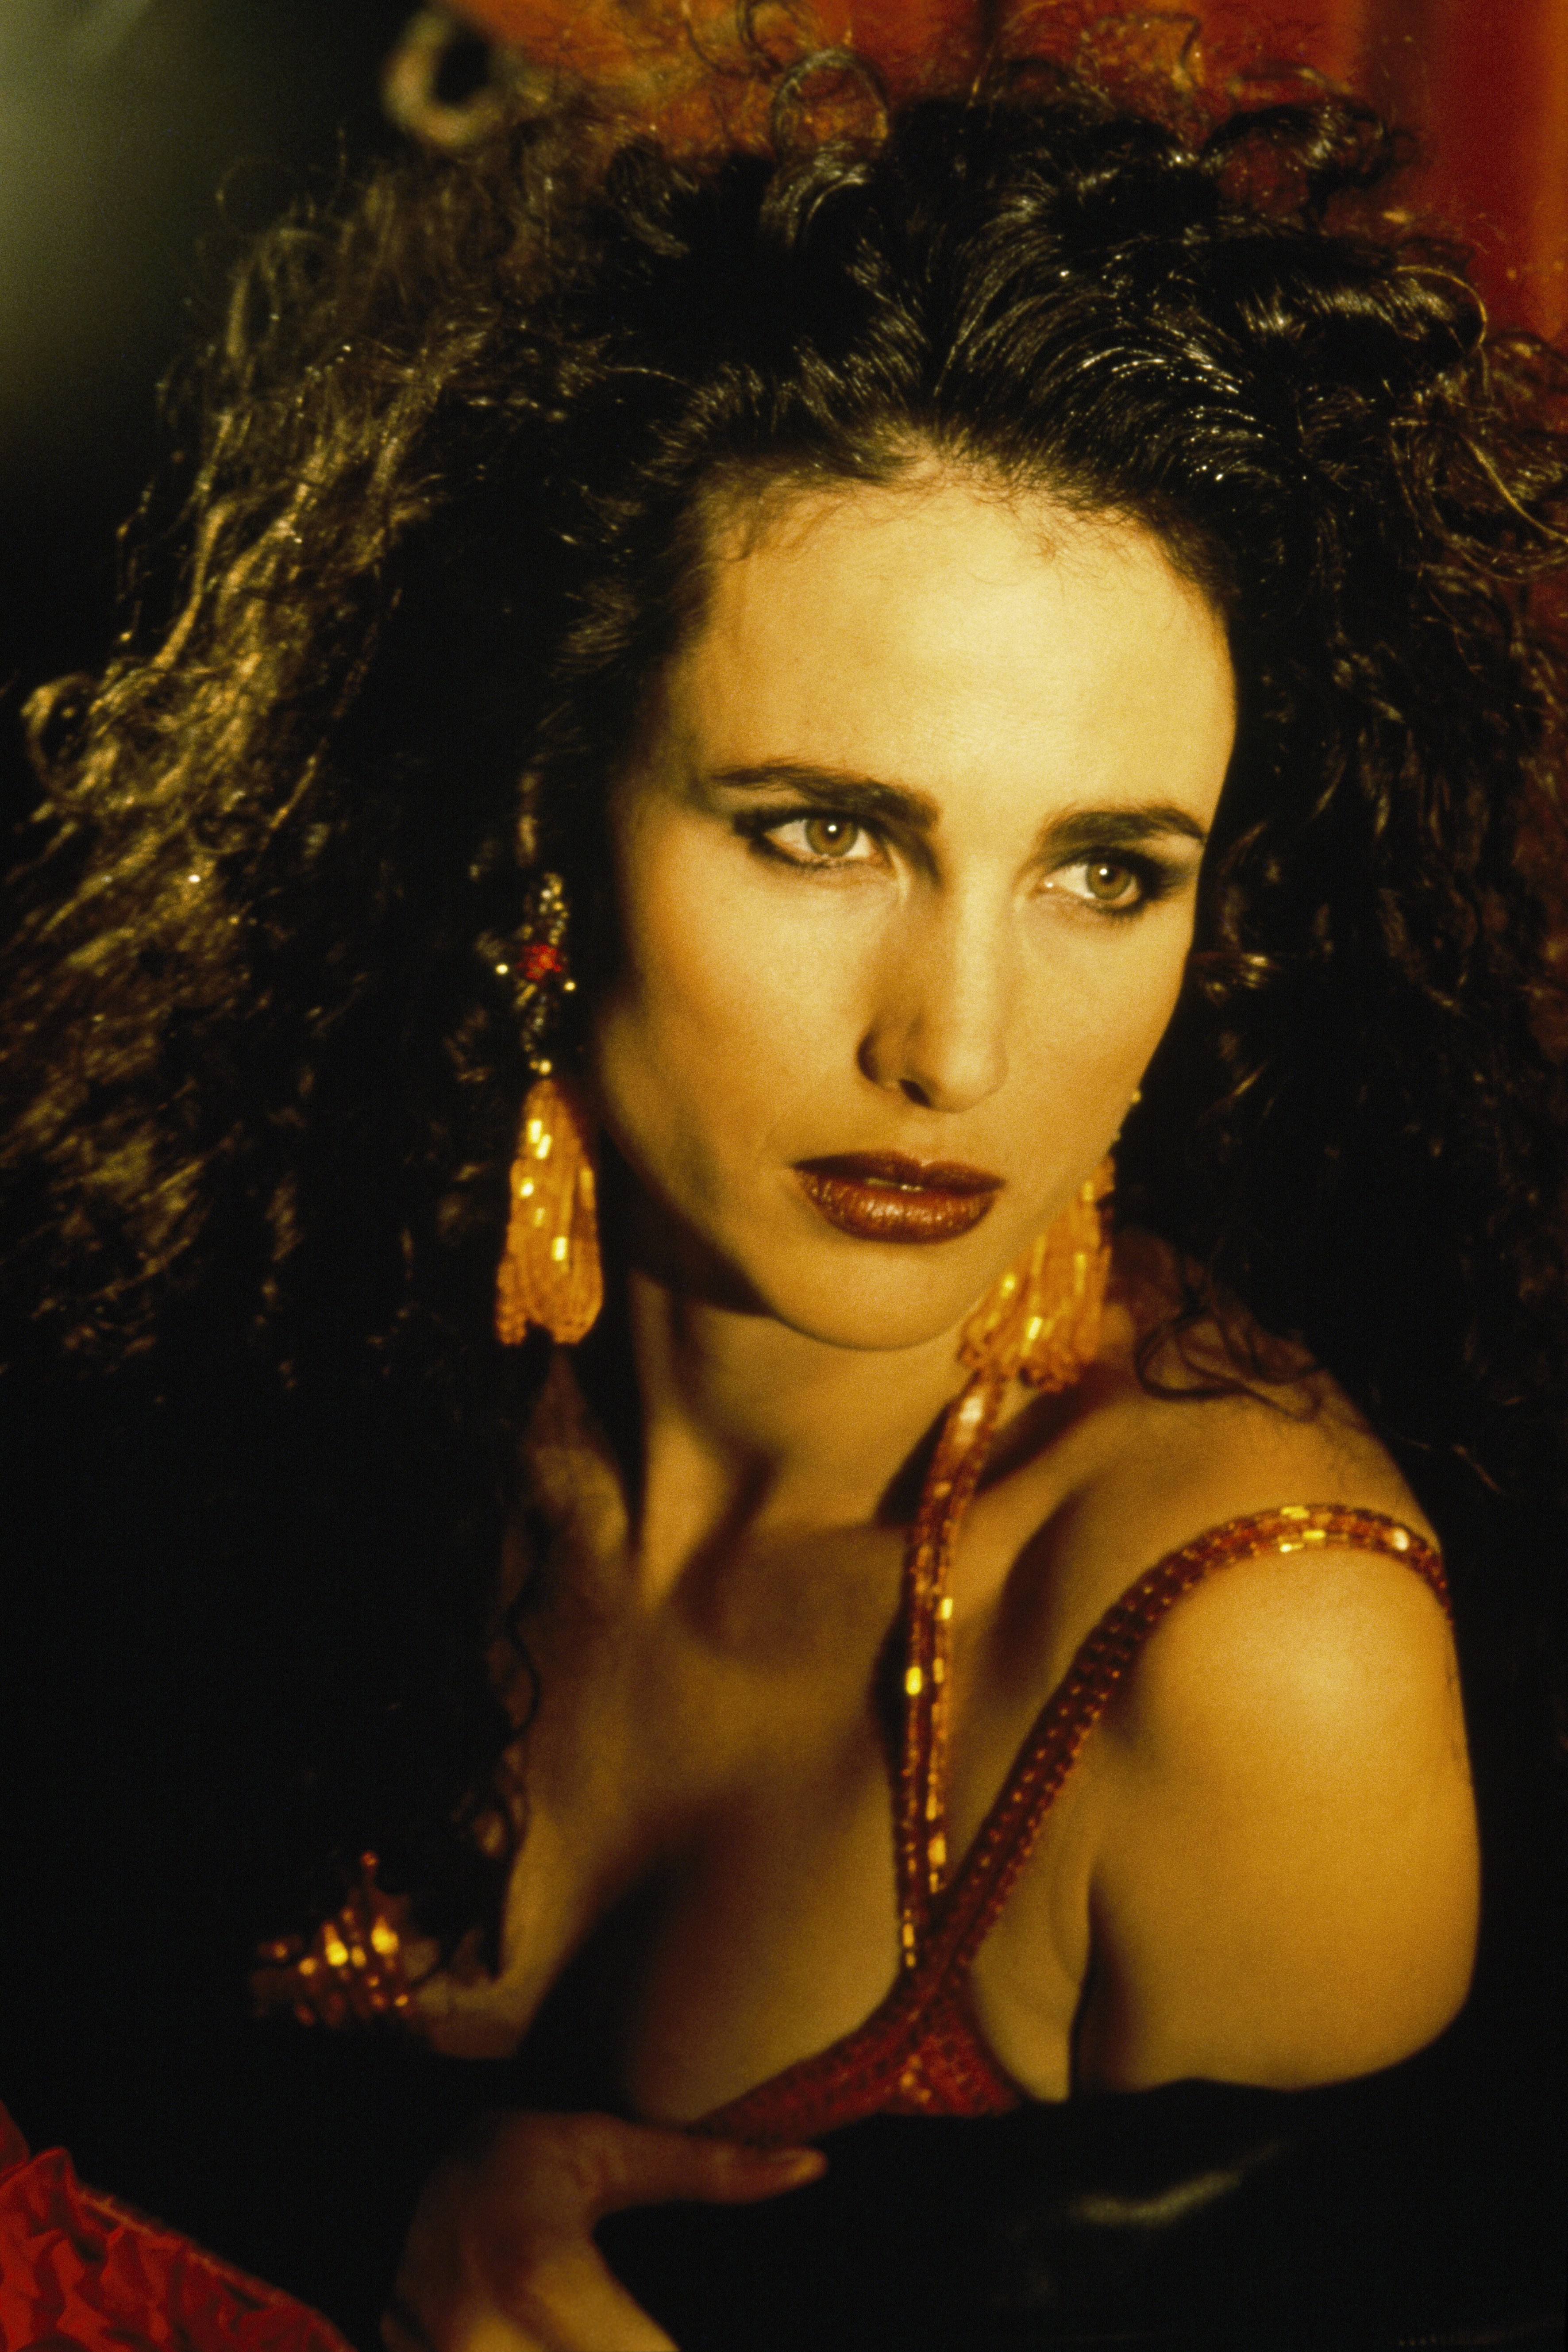 American Actress and Model Andie MacDowell